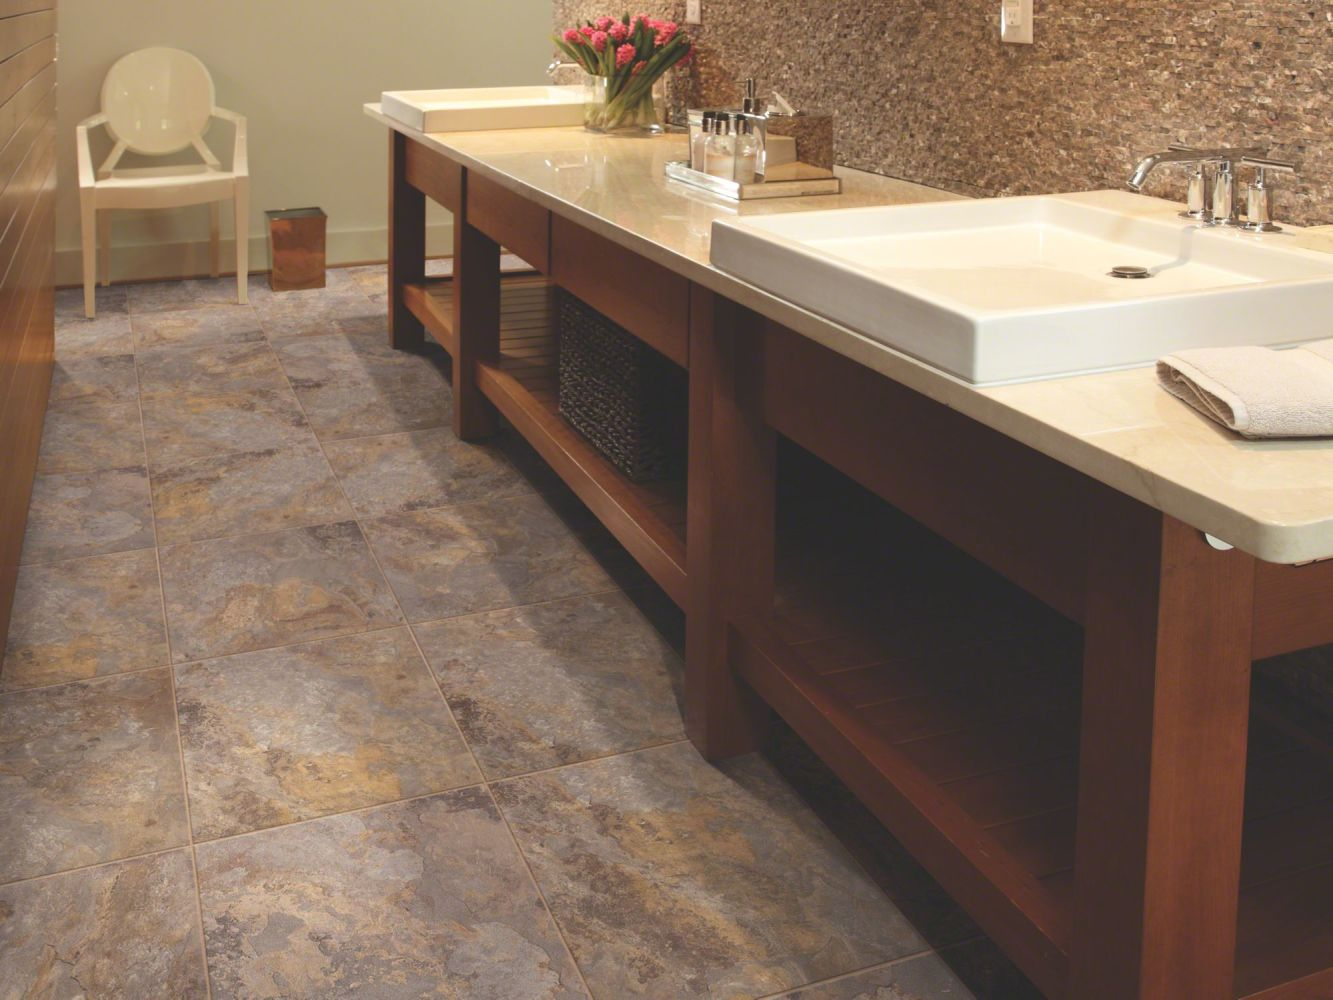 Shaw Floors Resilient Residential Resort Tile Walnut 00701_0189V